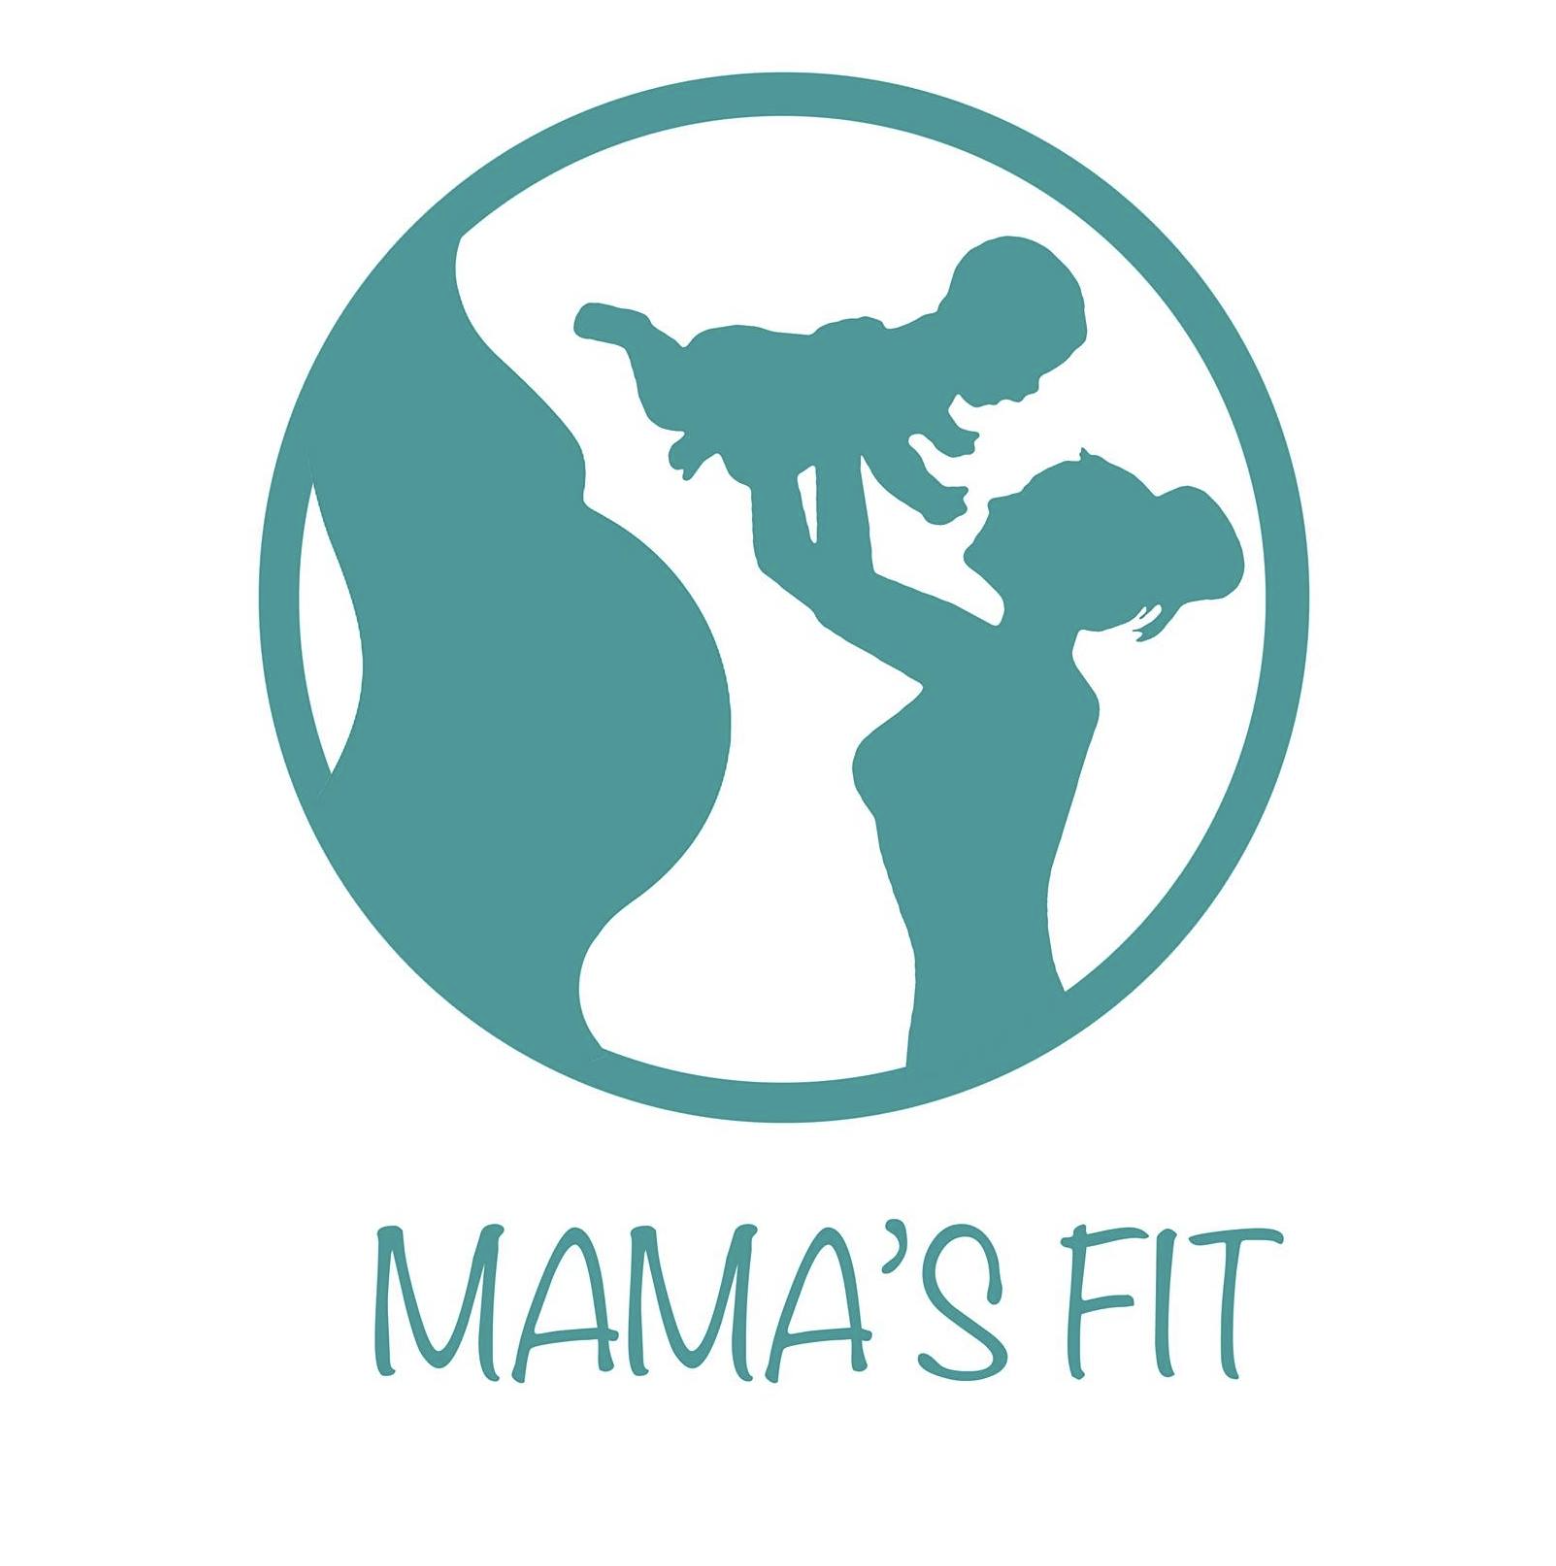 www.mamasfit.be